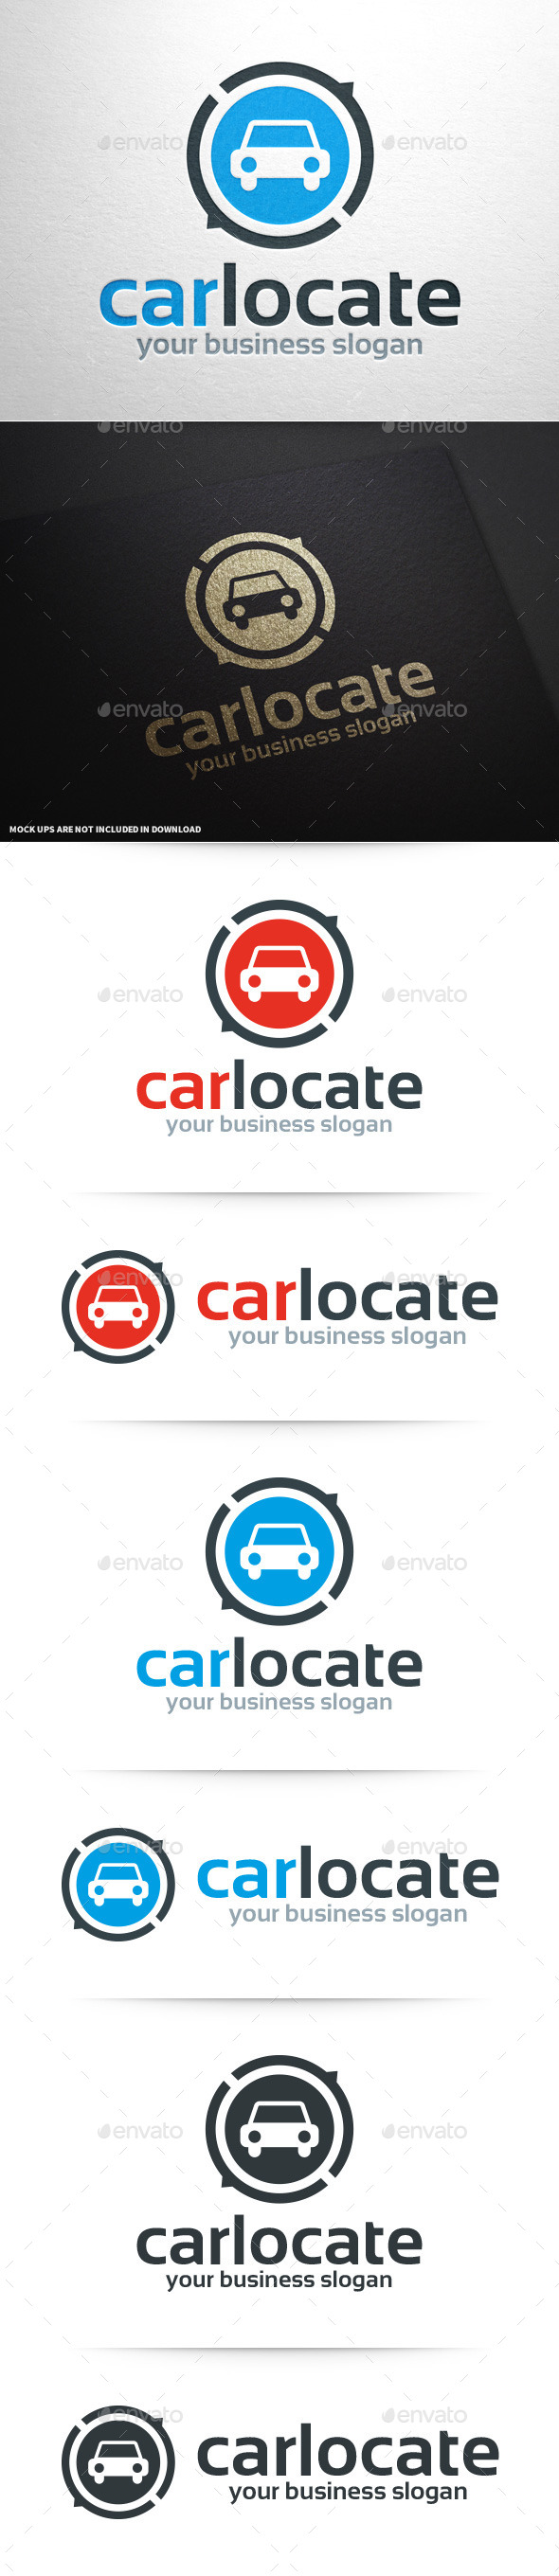 Car Locate Logo Template - Objects Logo Templates